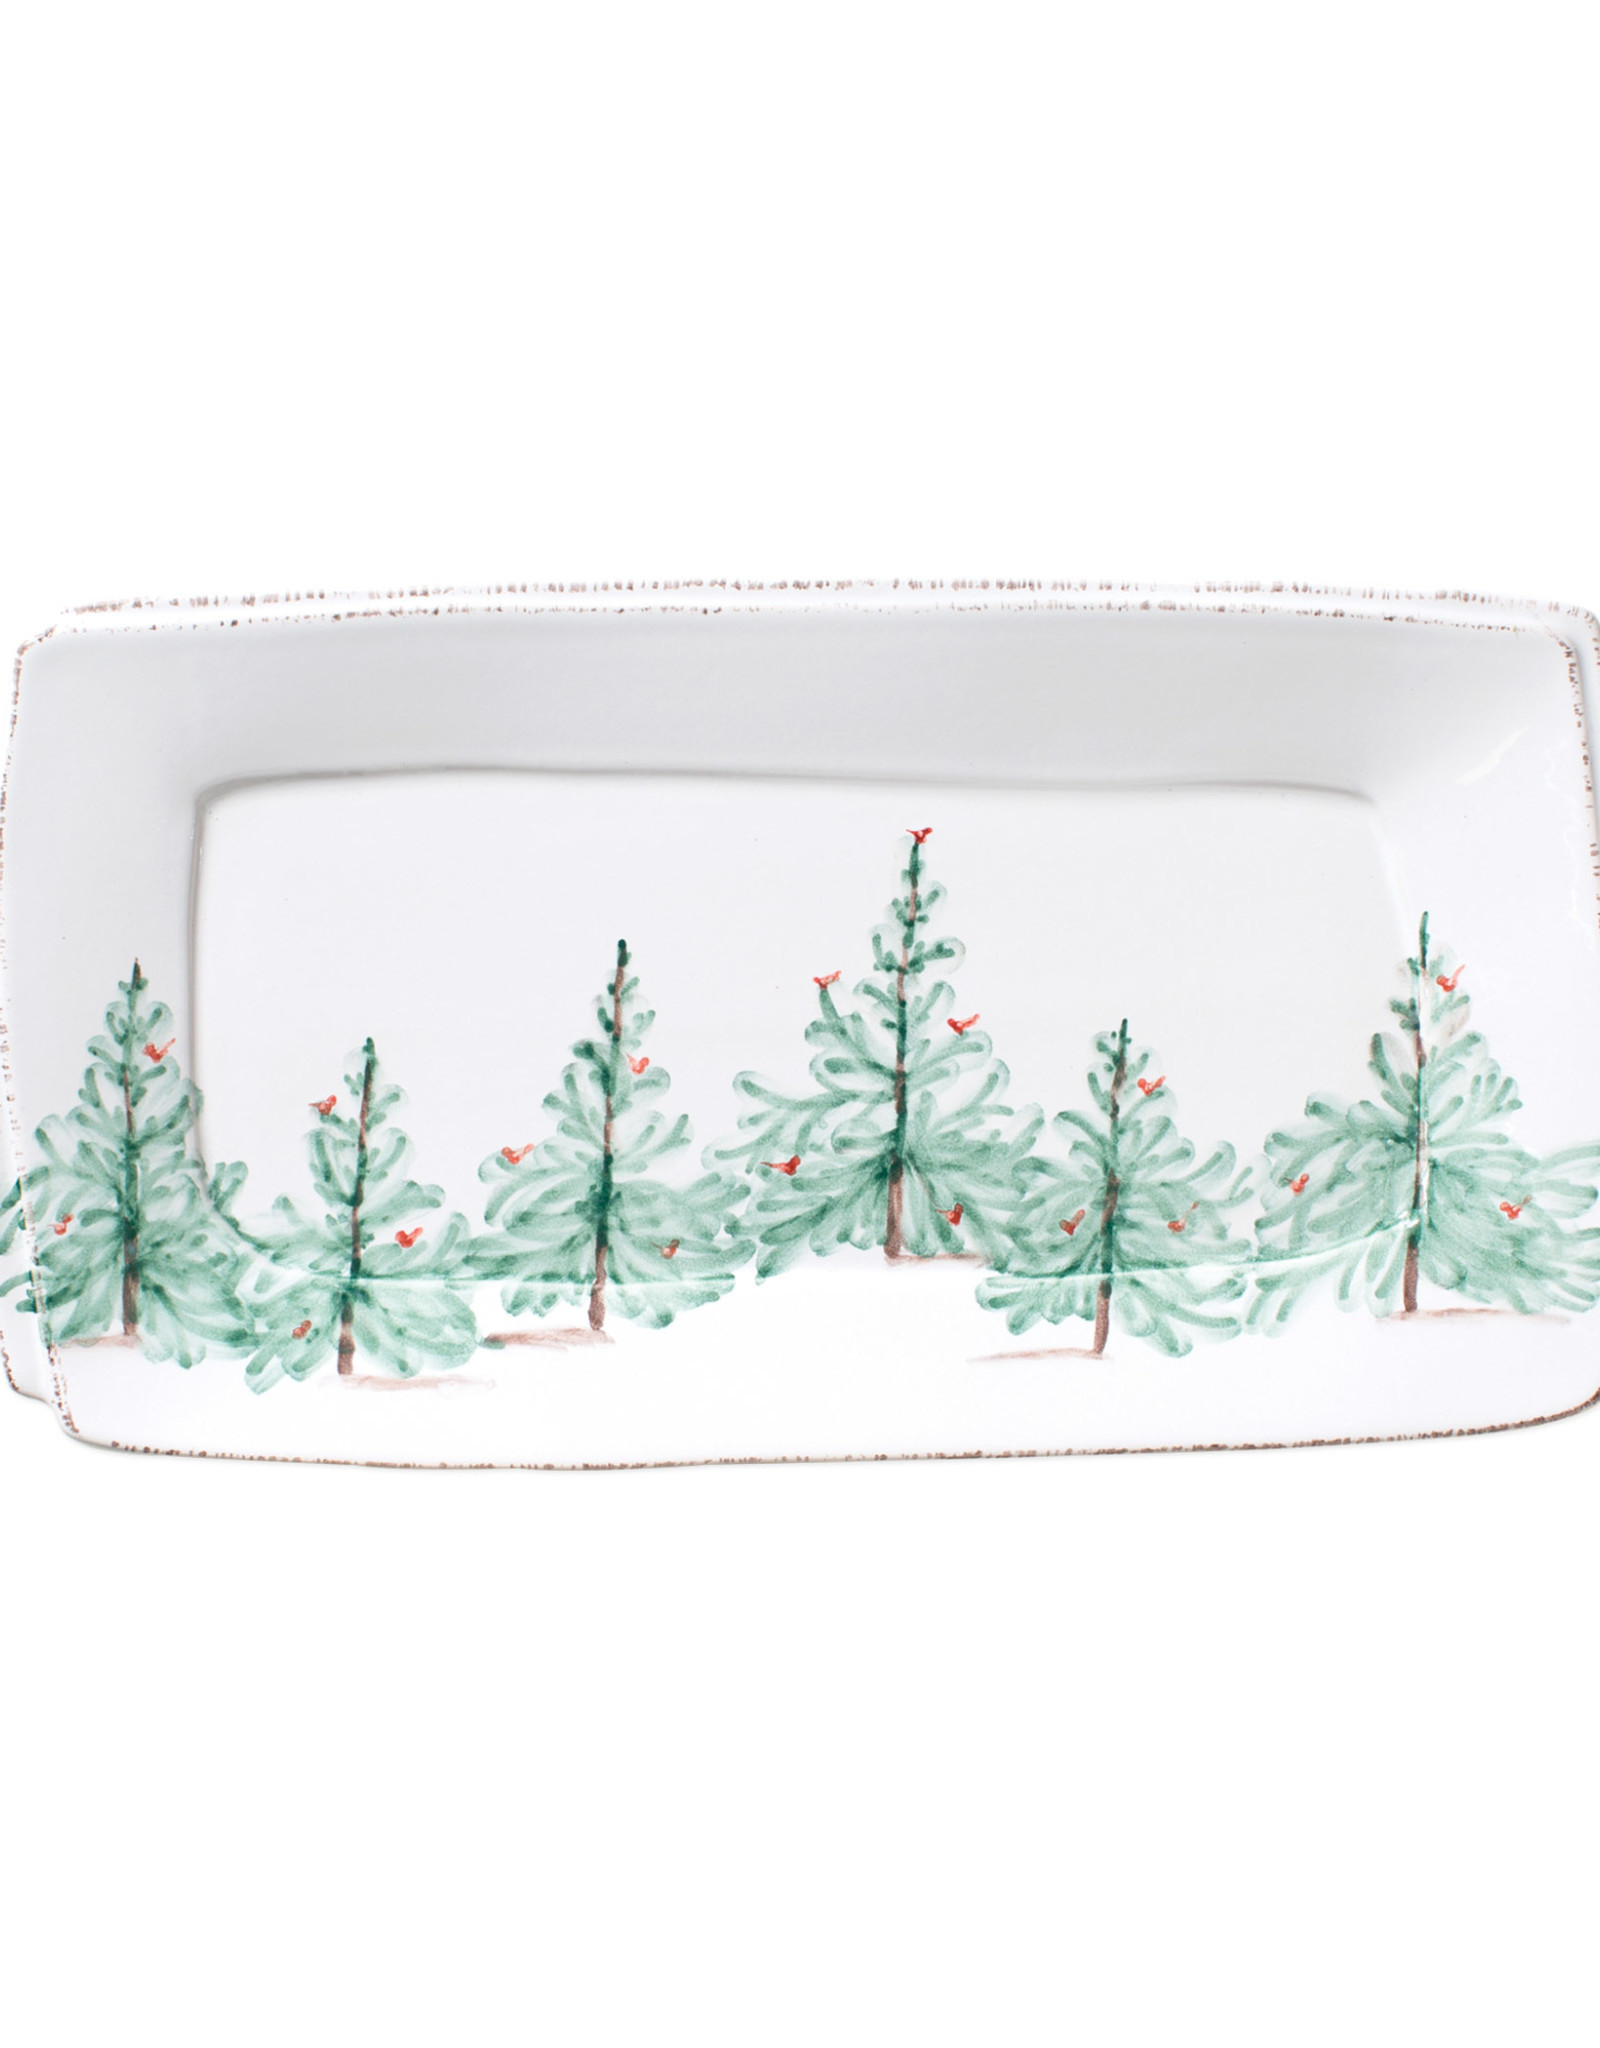 Vietri Lastra Holiday Handled Rectangular Platter